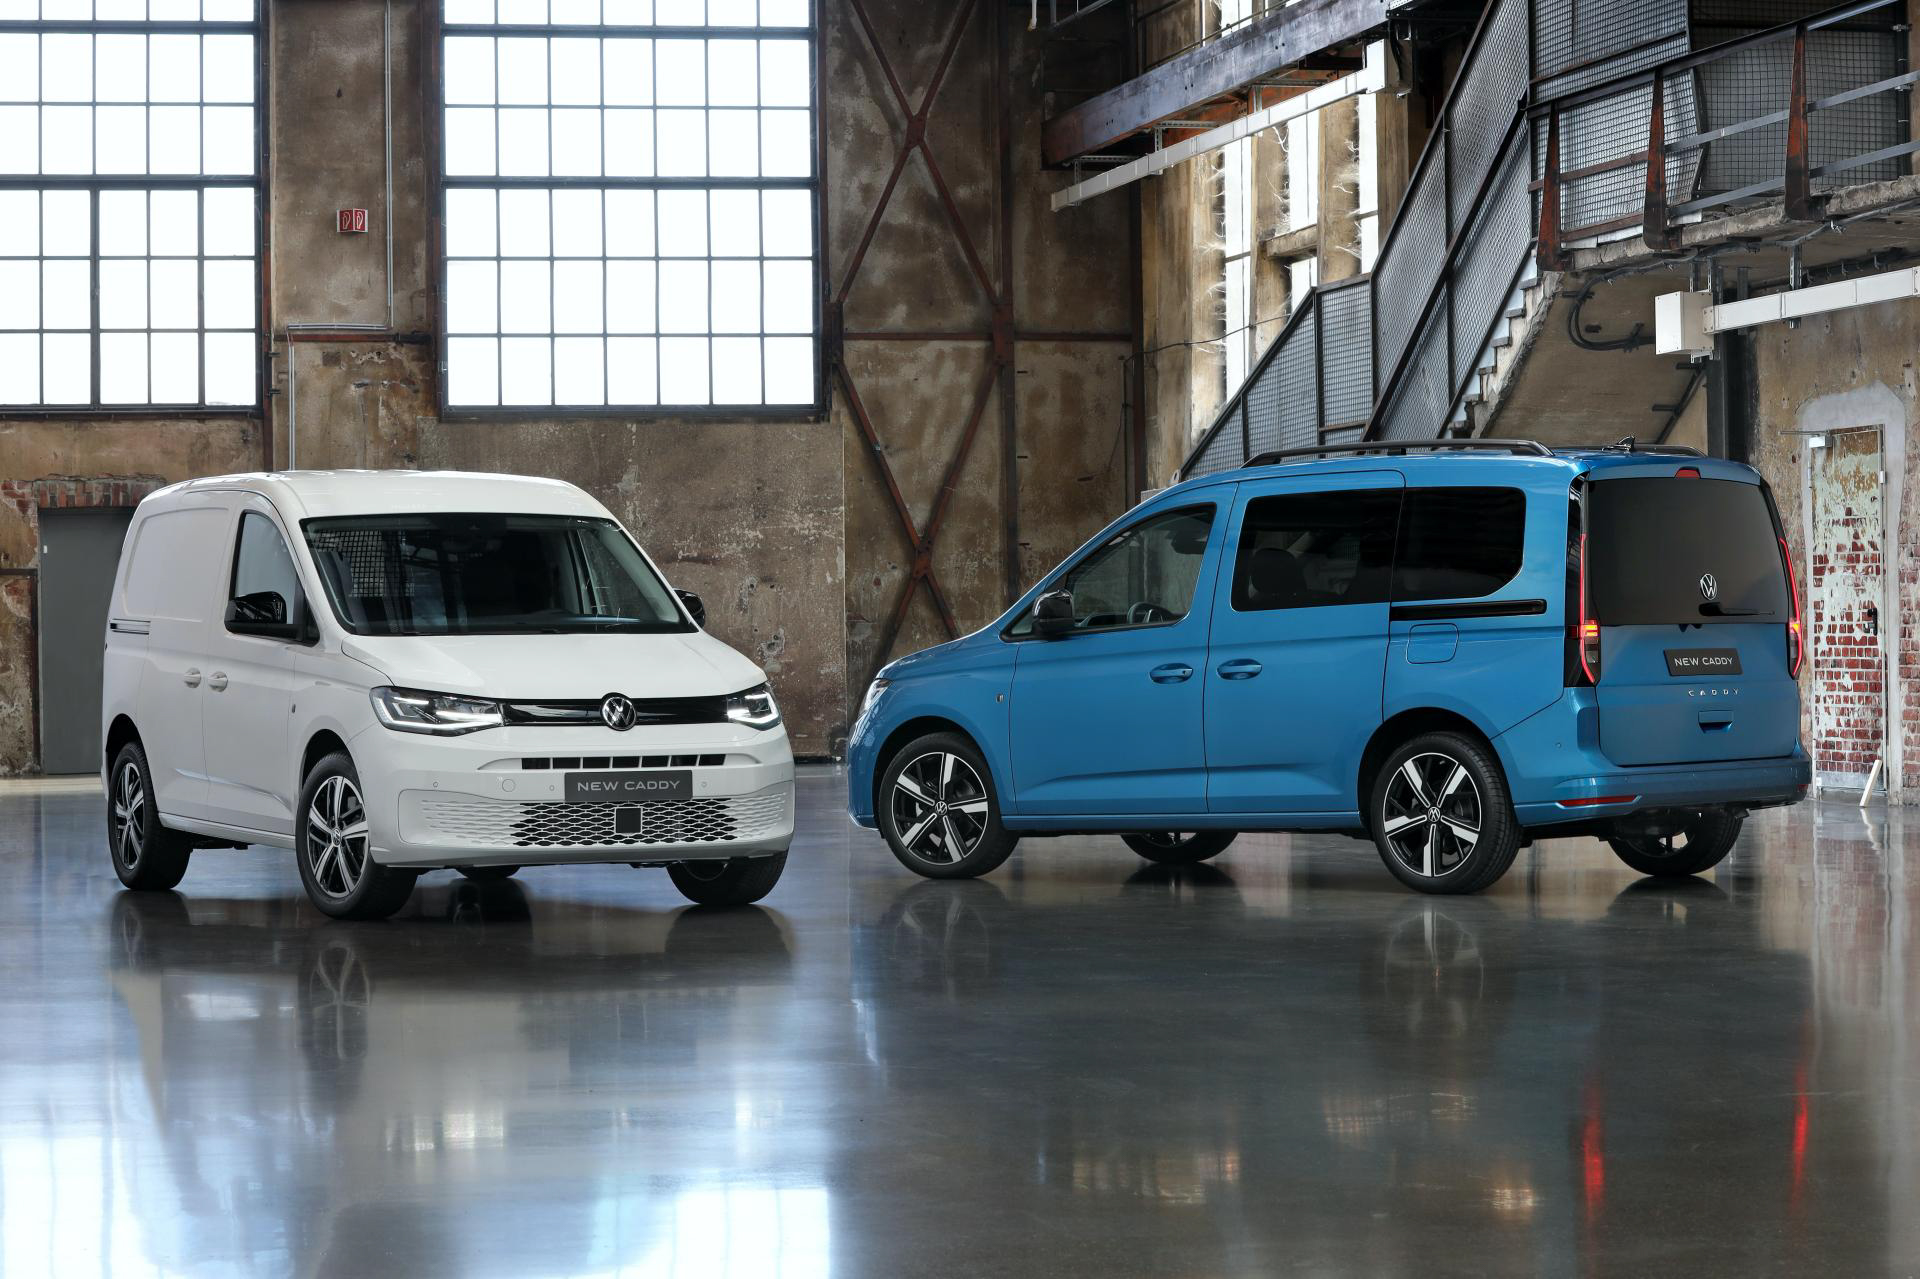 2021 Volkswagen Caddy revealed, low specification model features black plastic bumpers.